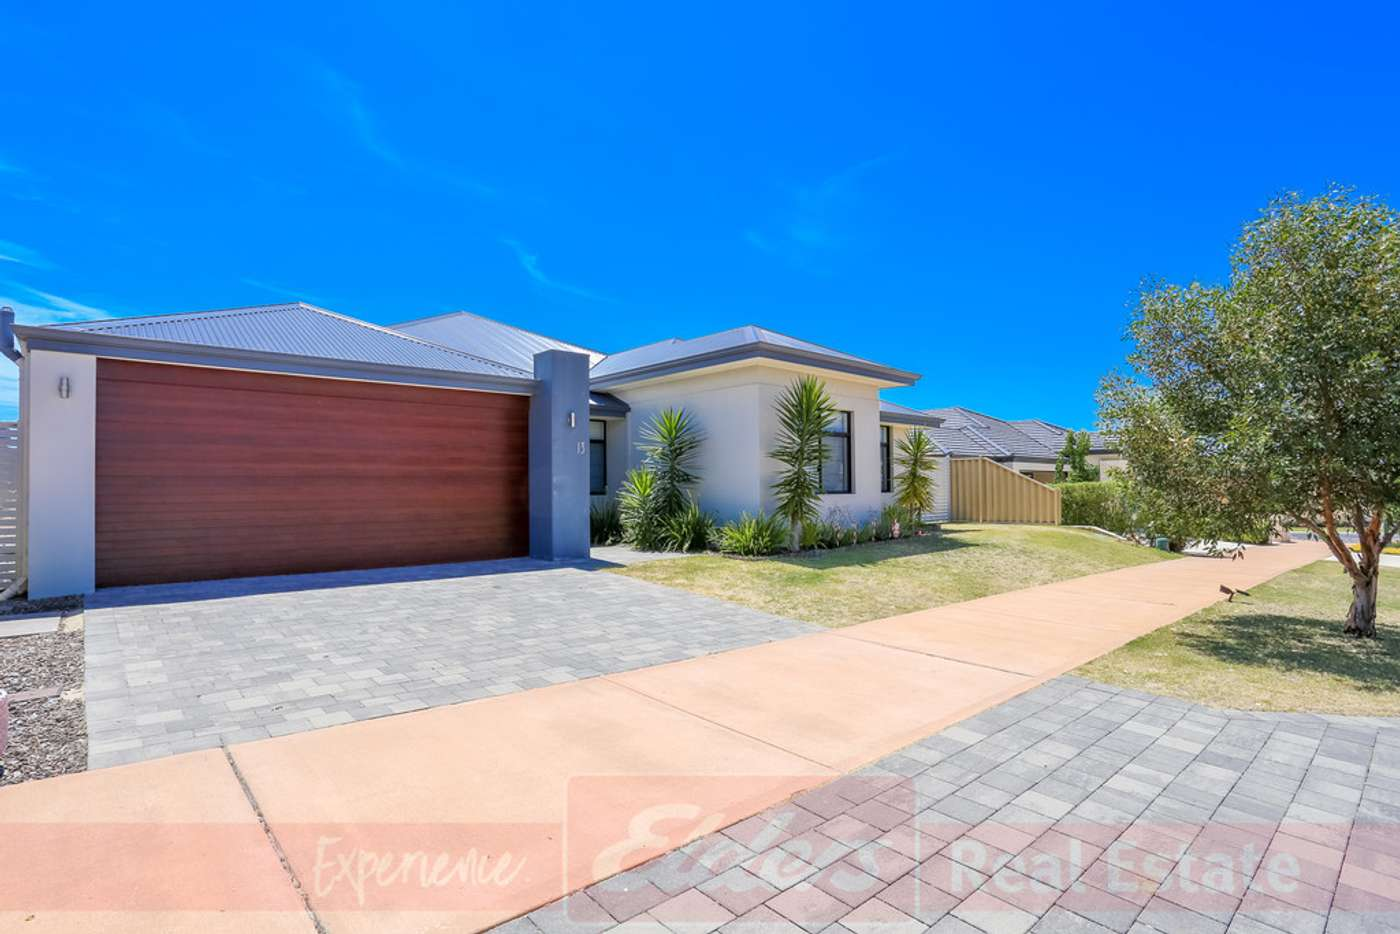 Main view of Homely house listing, 13 Pascoe Way, Millbridge WA 6232